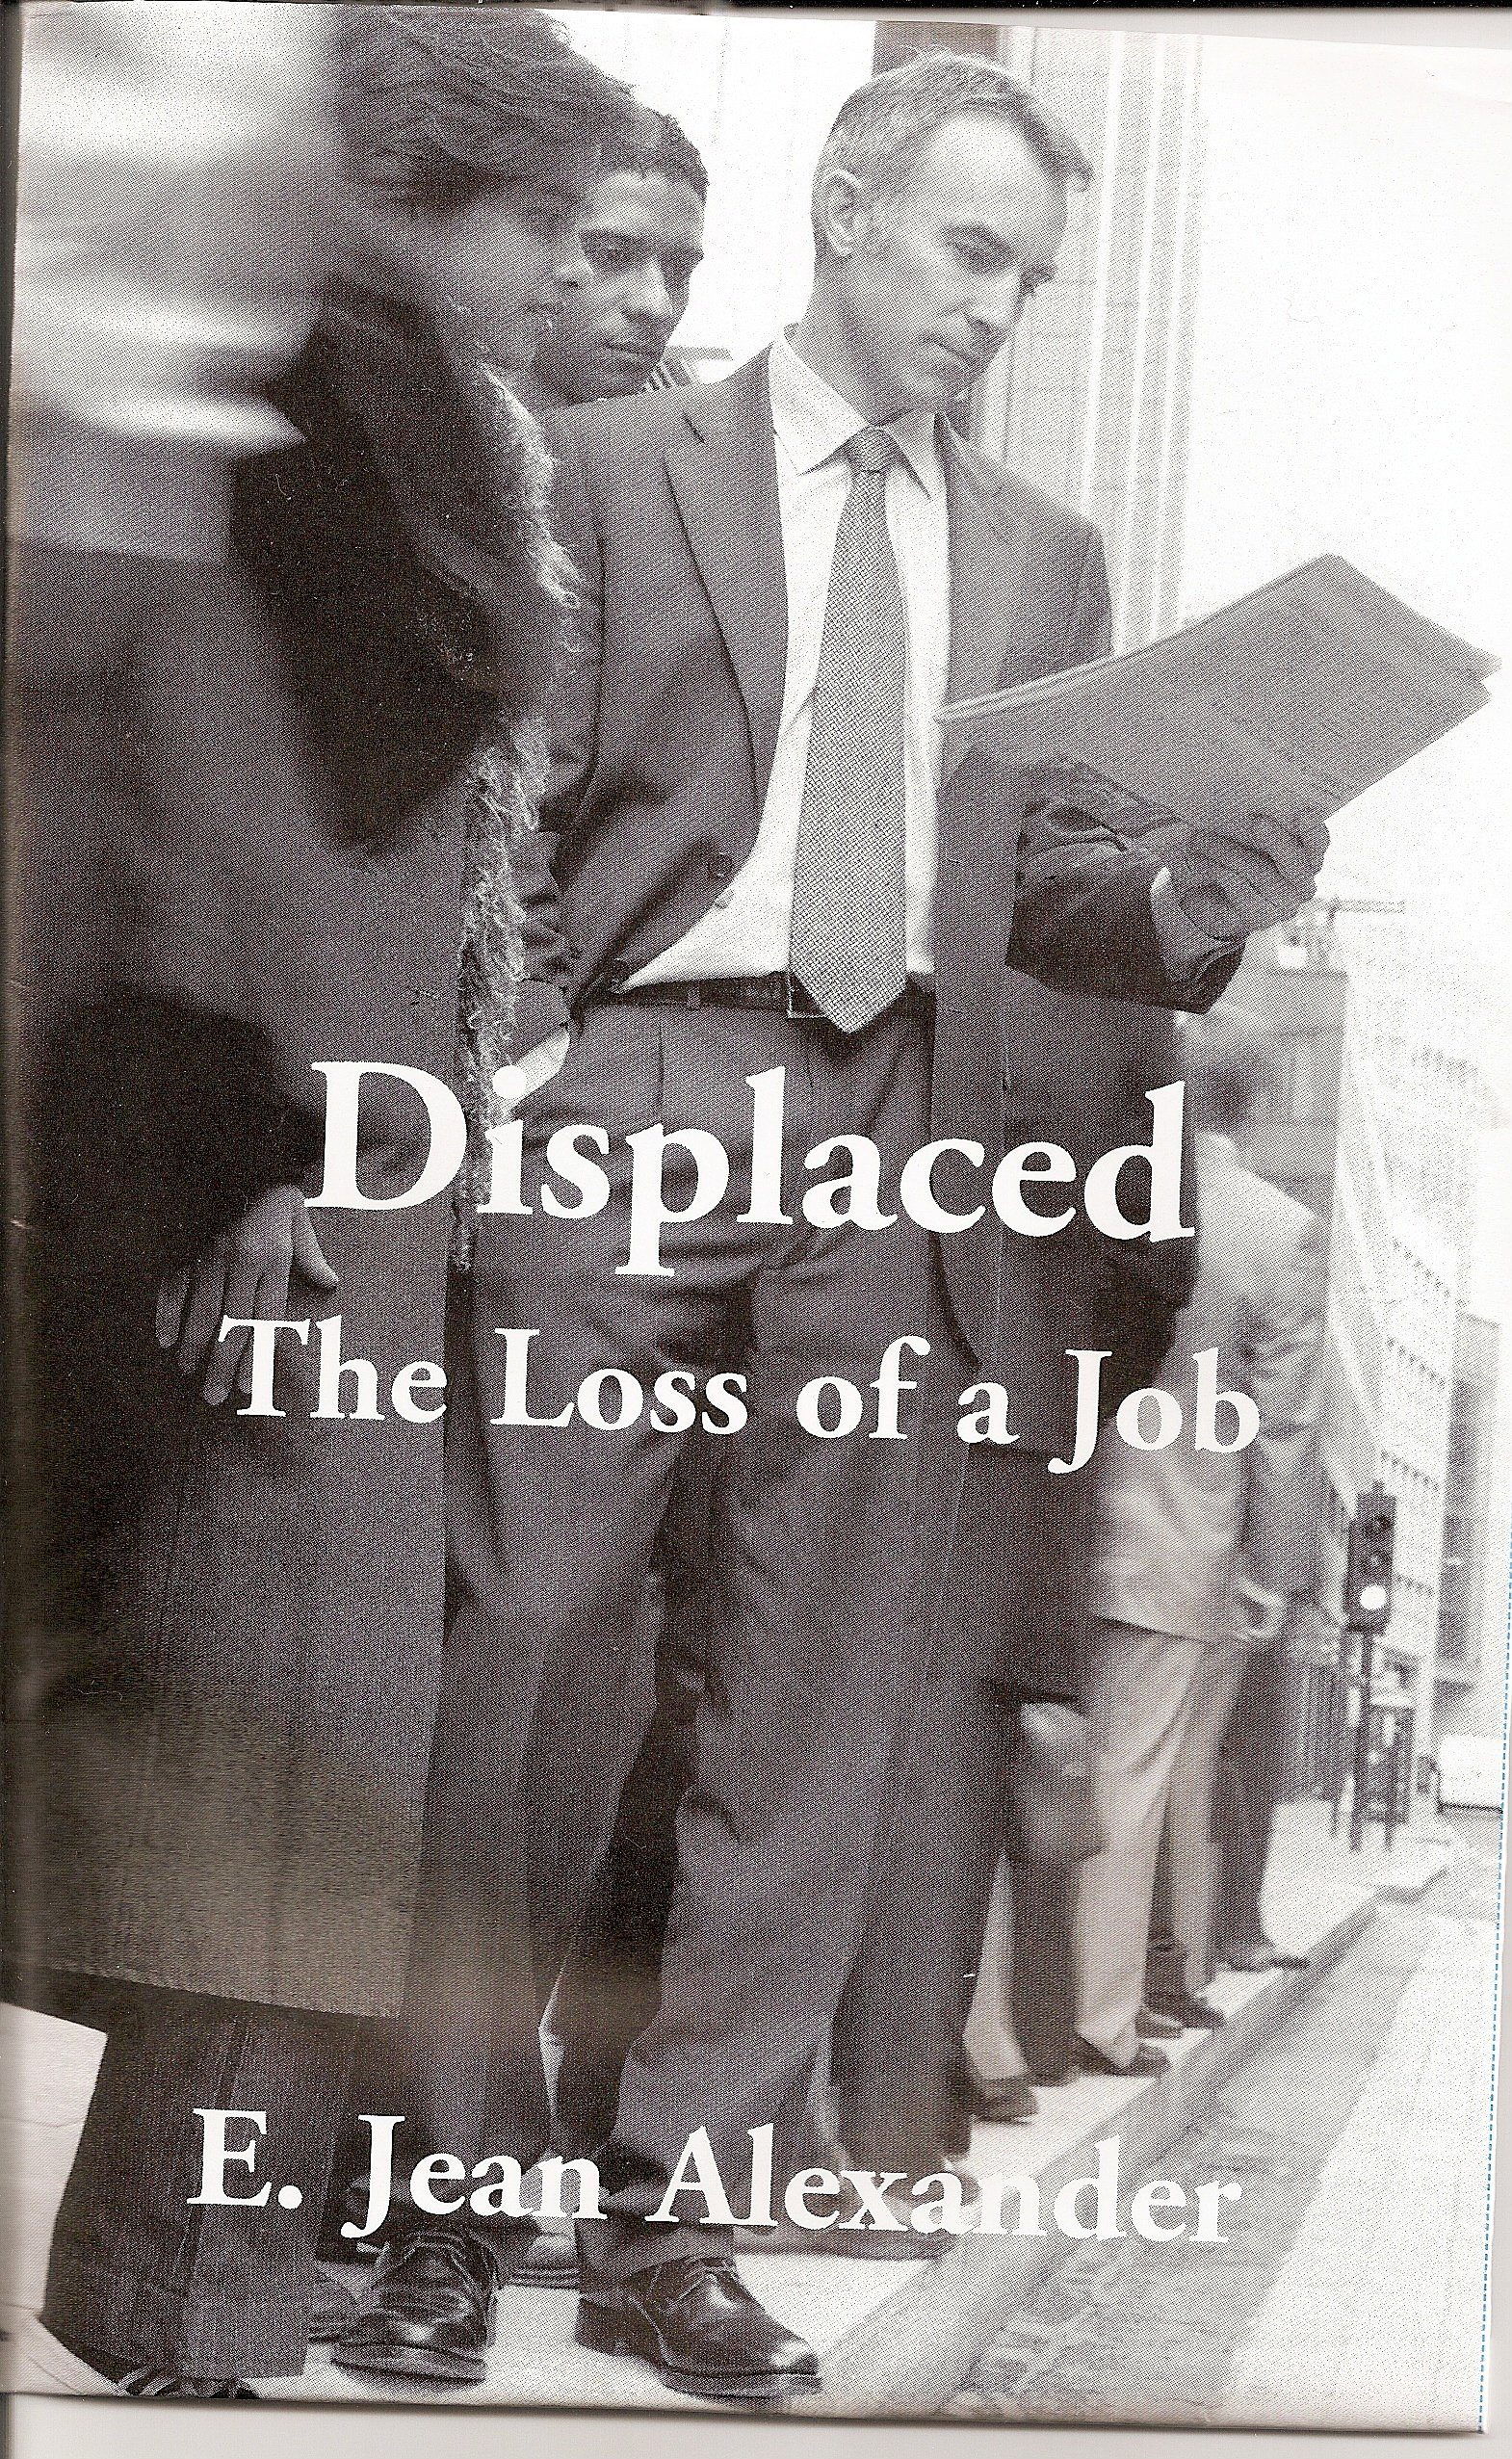 Displaced The loss of a Job